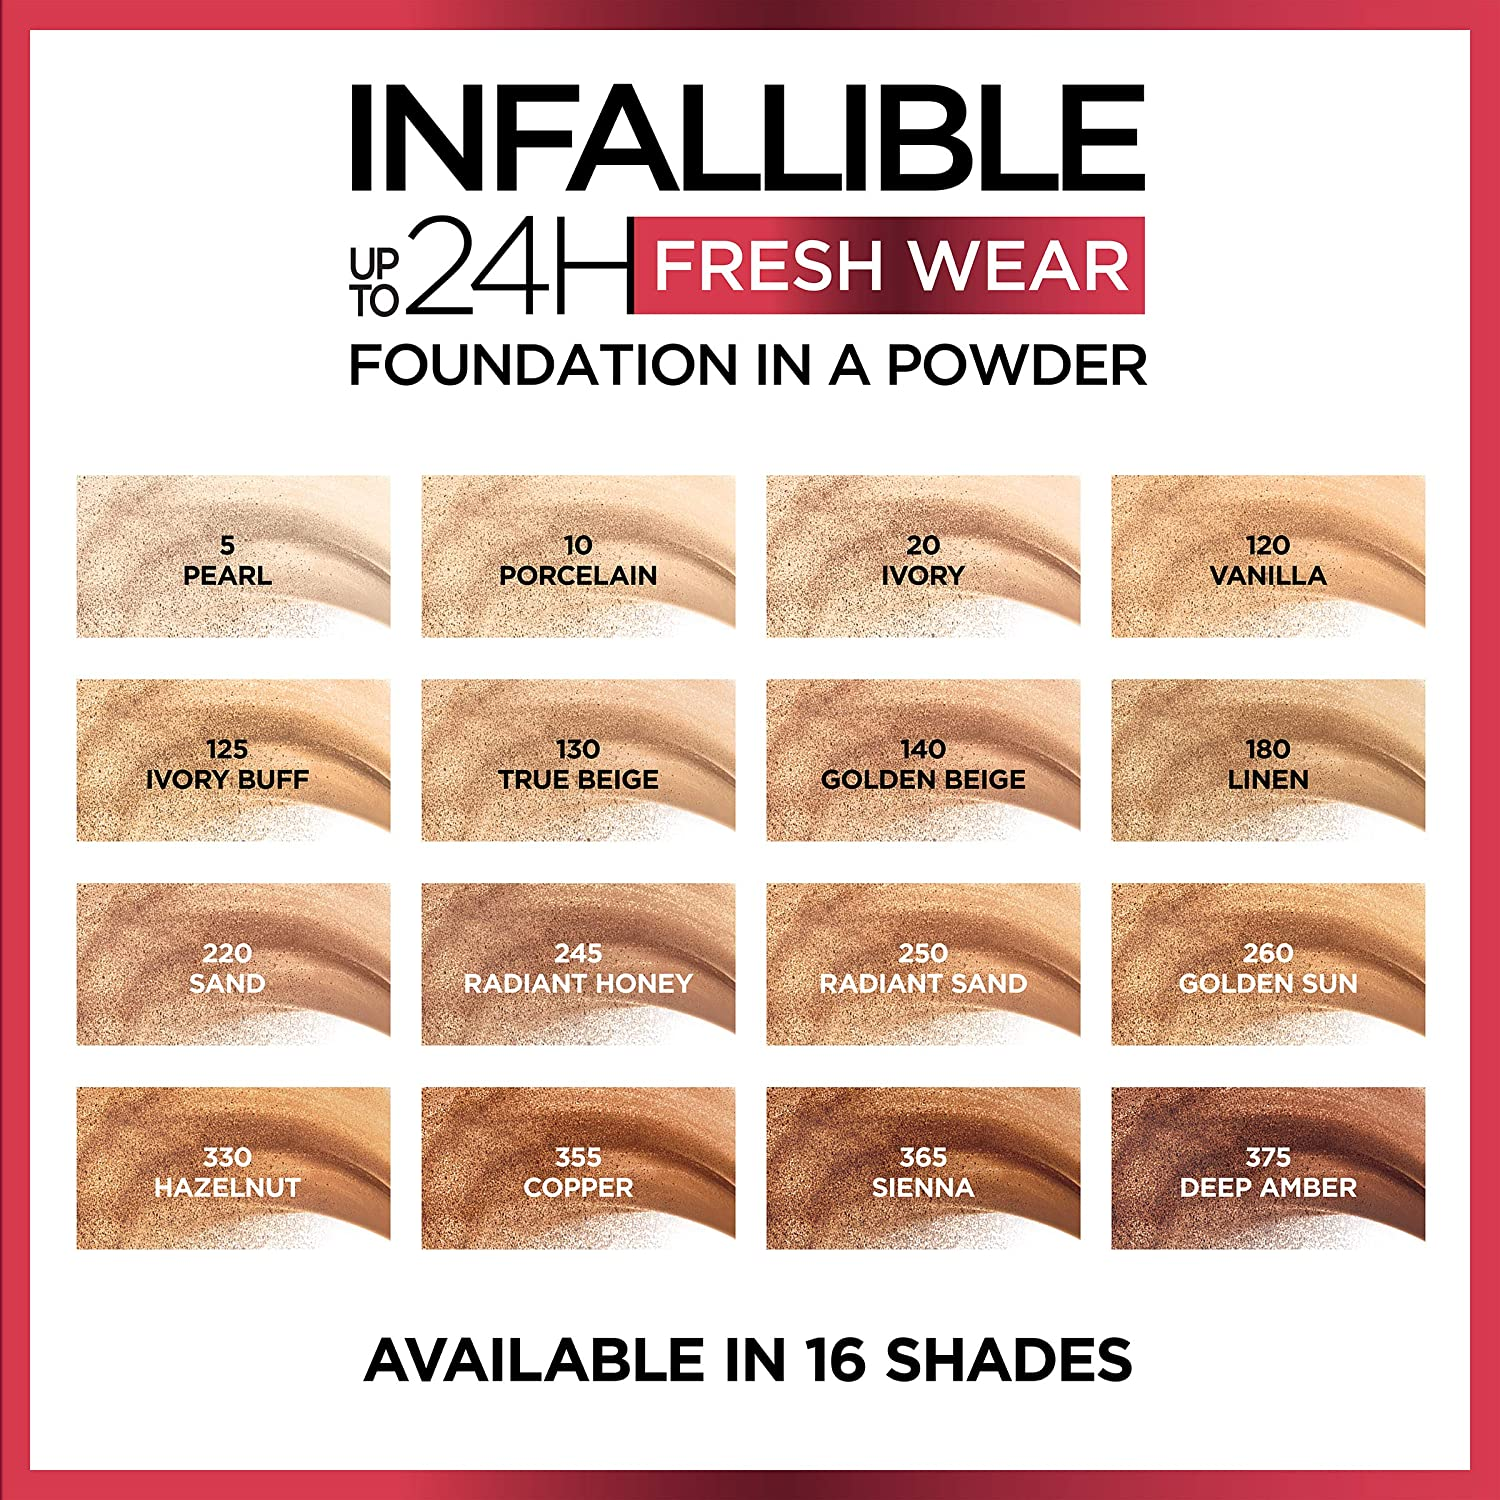 L Oreal Infallible Fresh Wear Foundation In A Powder Exciting New Launch 24h